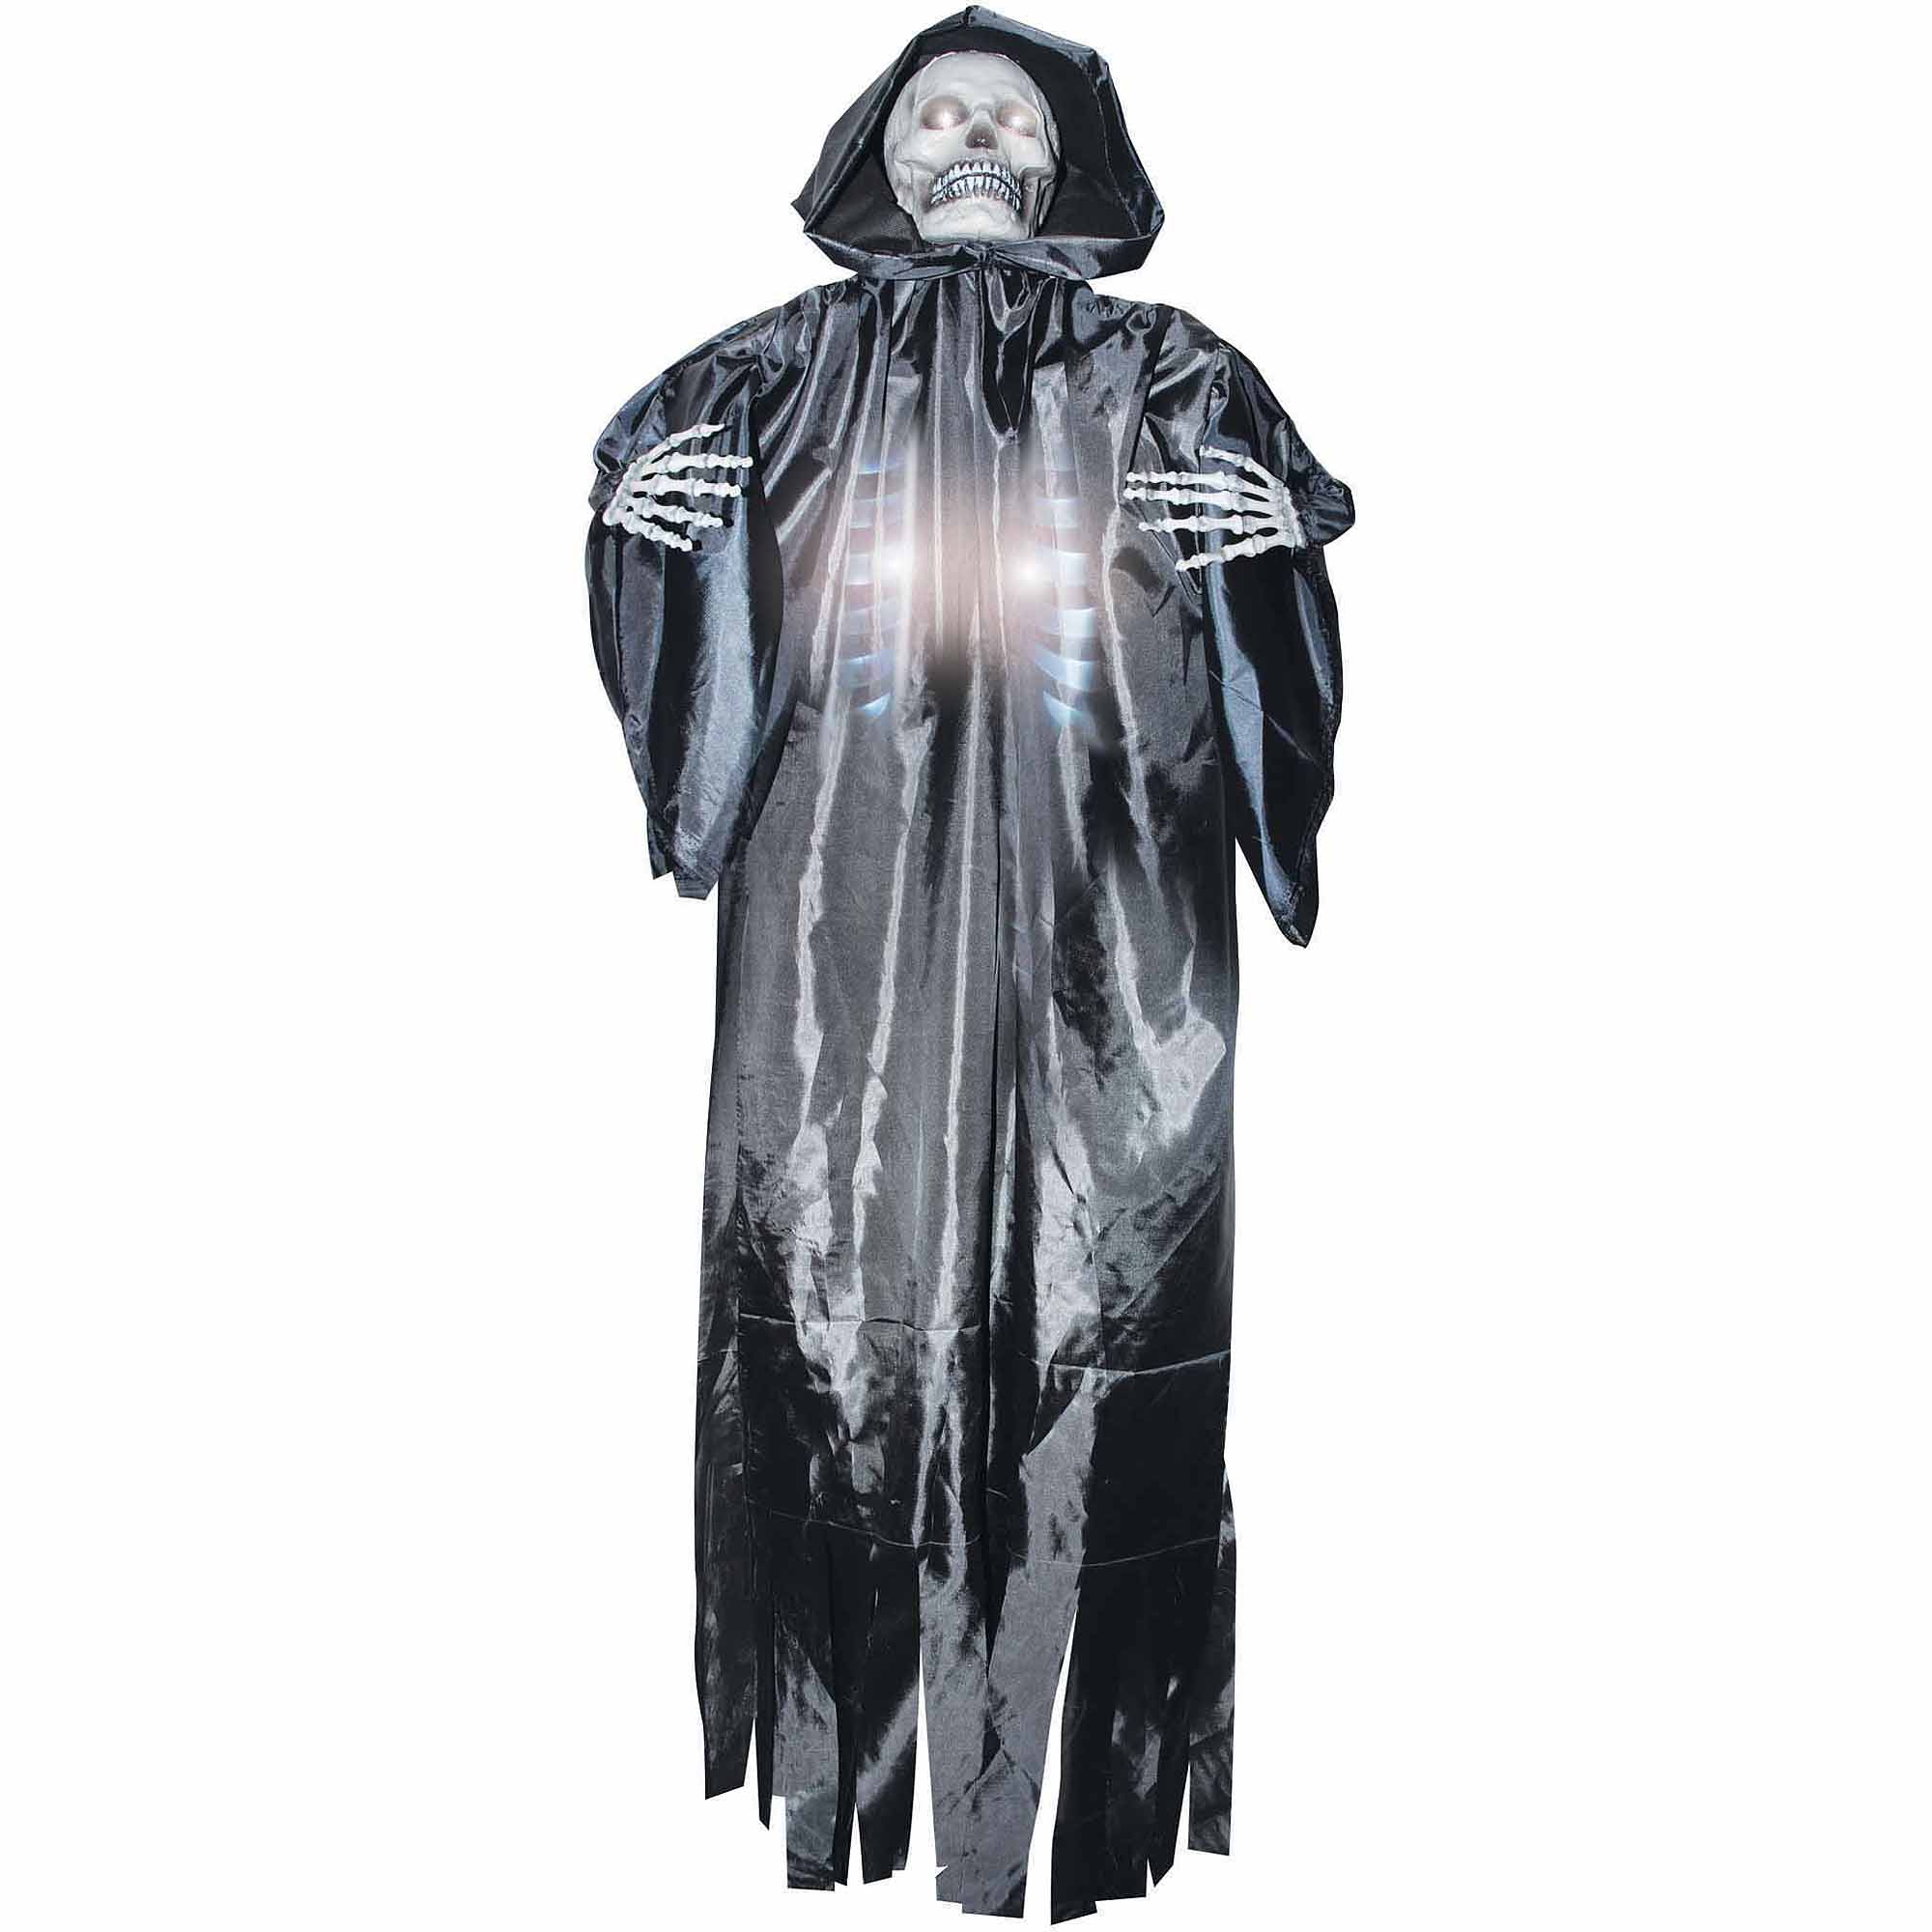 Lifesize Light Up Shocking Sound Skeleton Reaper Hanging Halloween Prop